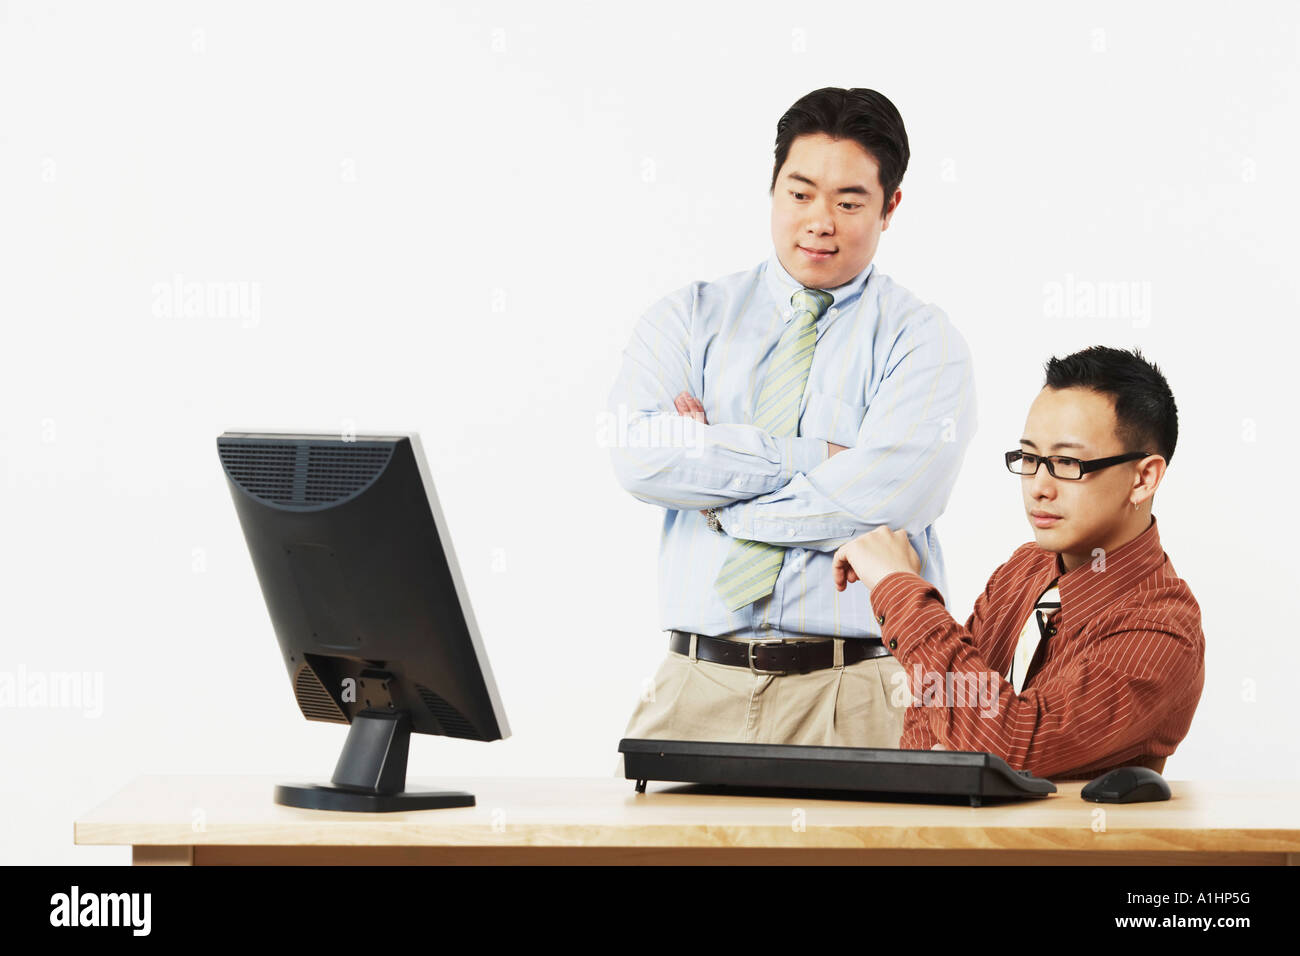 Two businessmen looking at a flat screen monitor - Stock Image